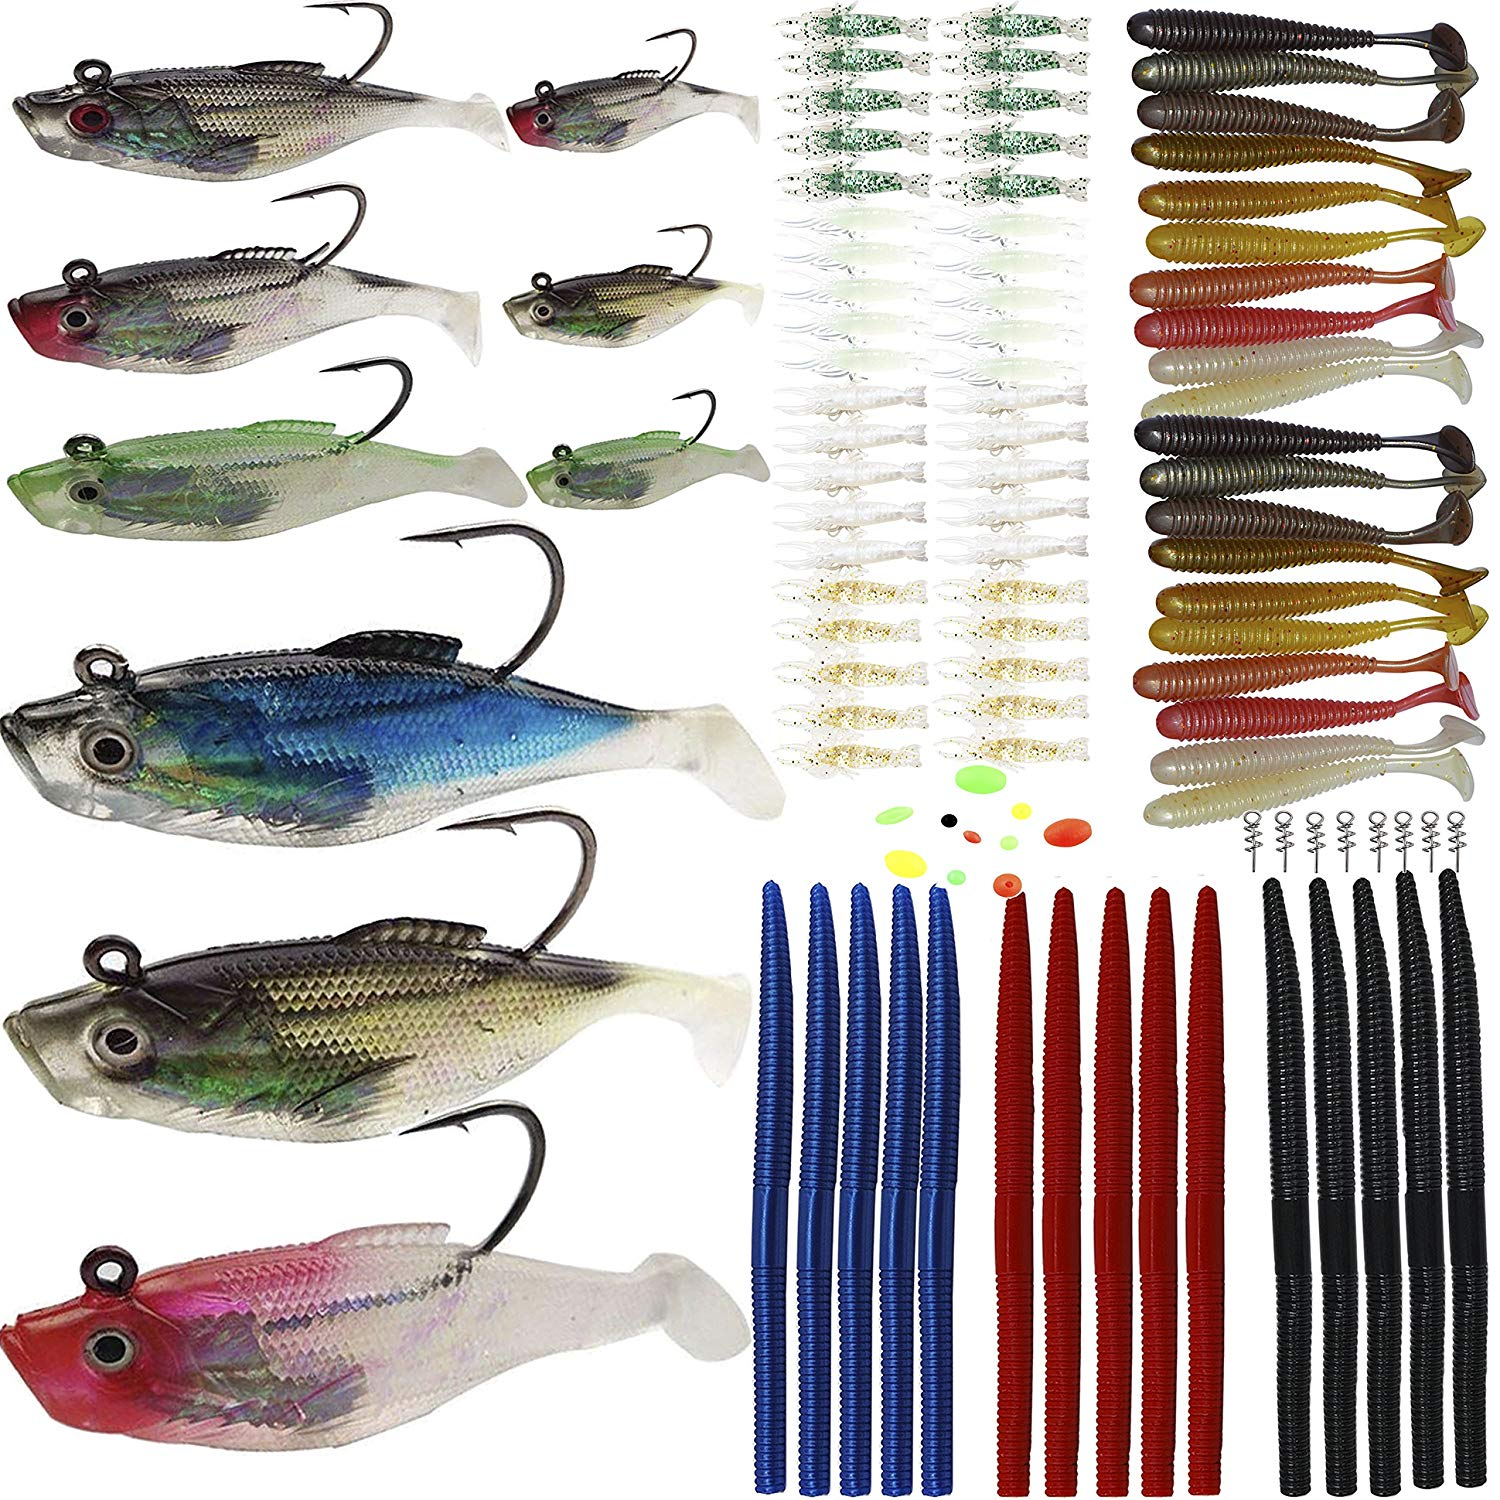 Fishing Lures Kit Soft Baits Tackle Soft Plastic Worms Shrimp Spring Twist Lock Fishing Beads Saltwater Freshwater Lures for Bass,Trout,Salmon